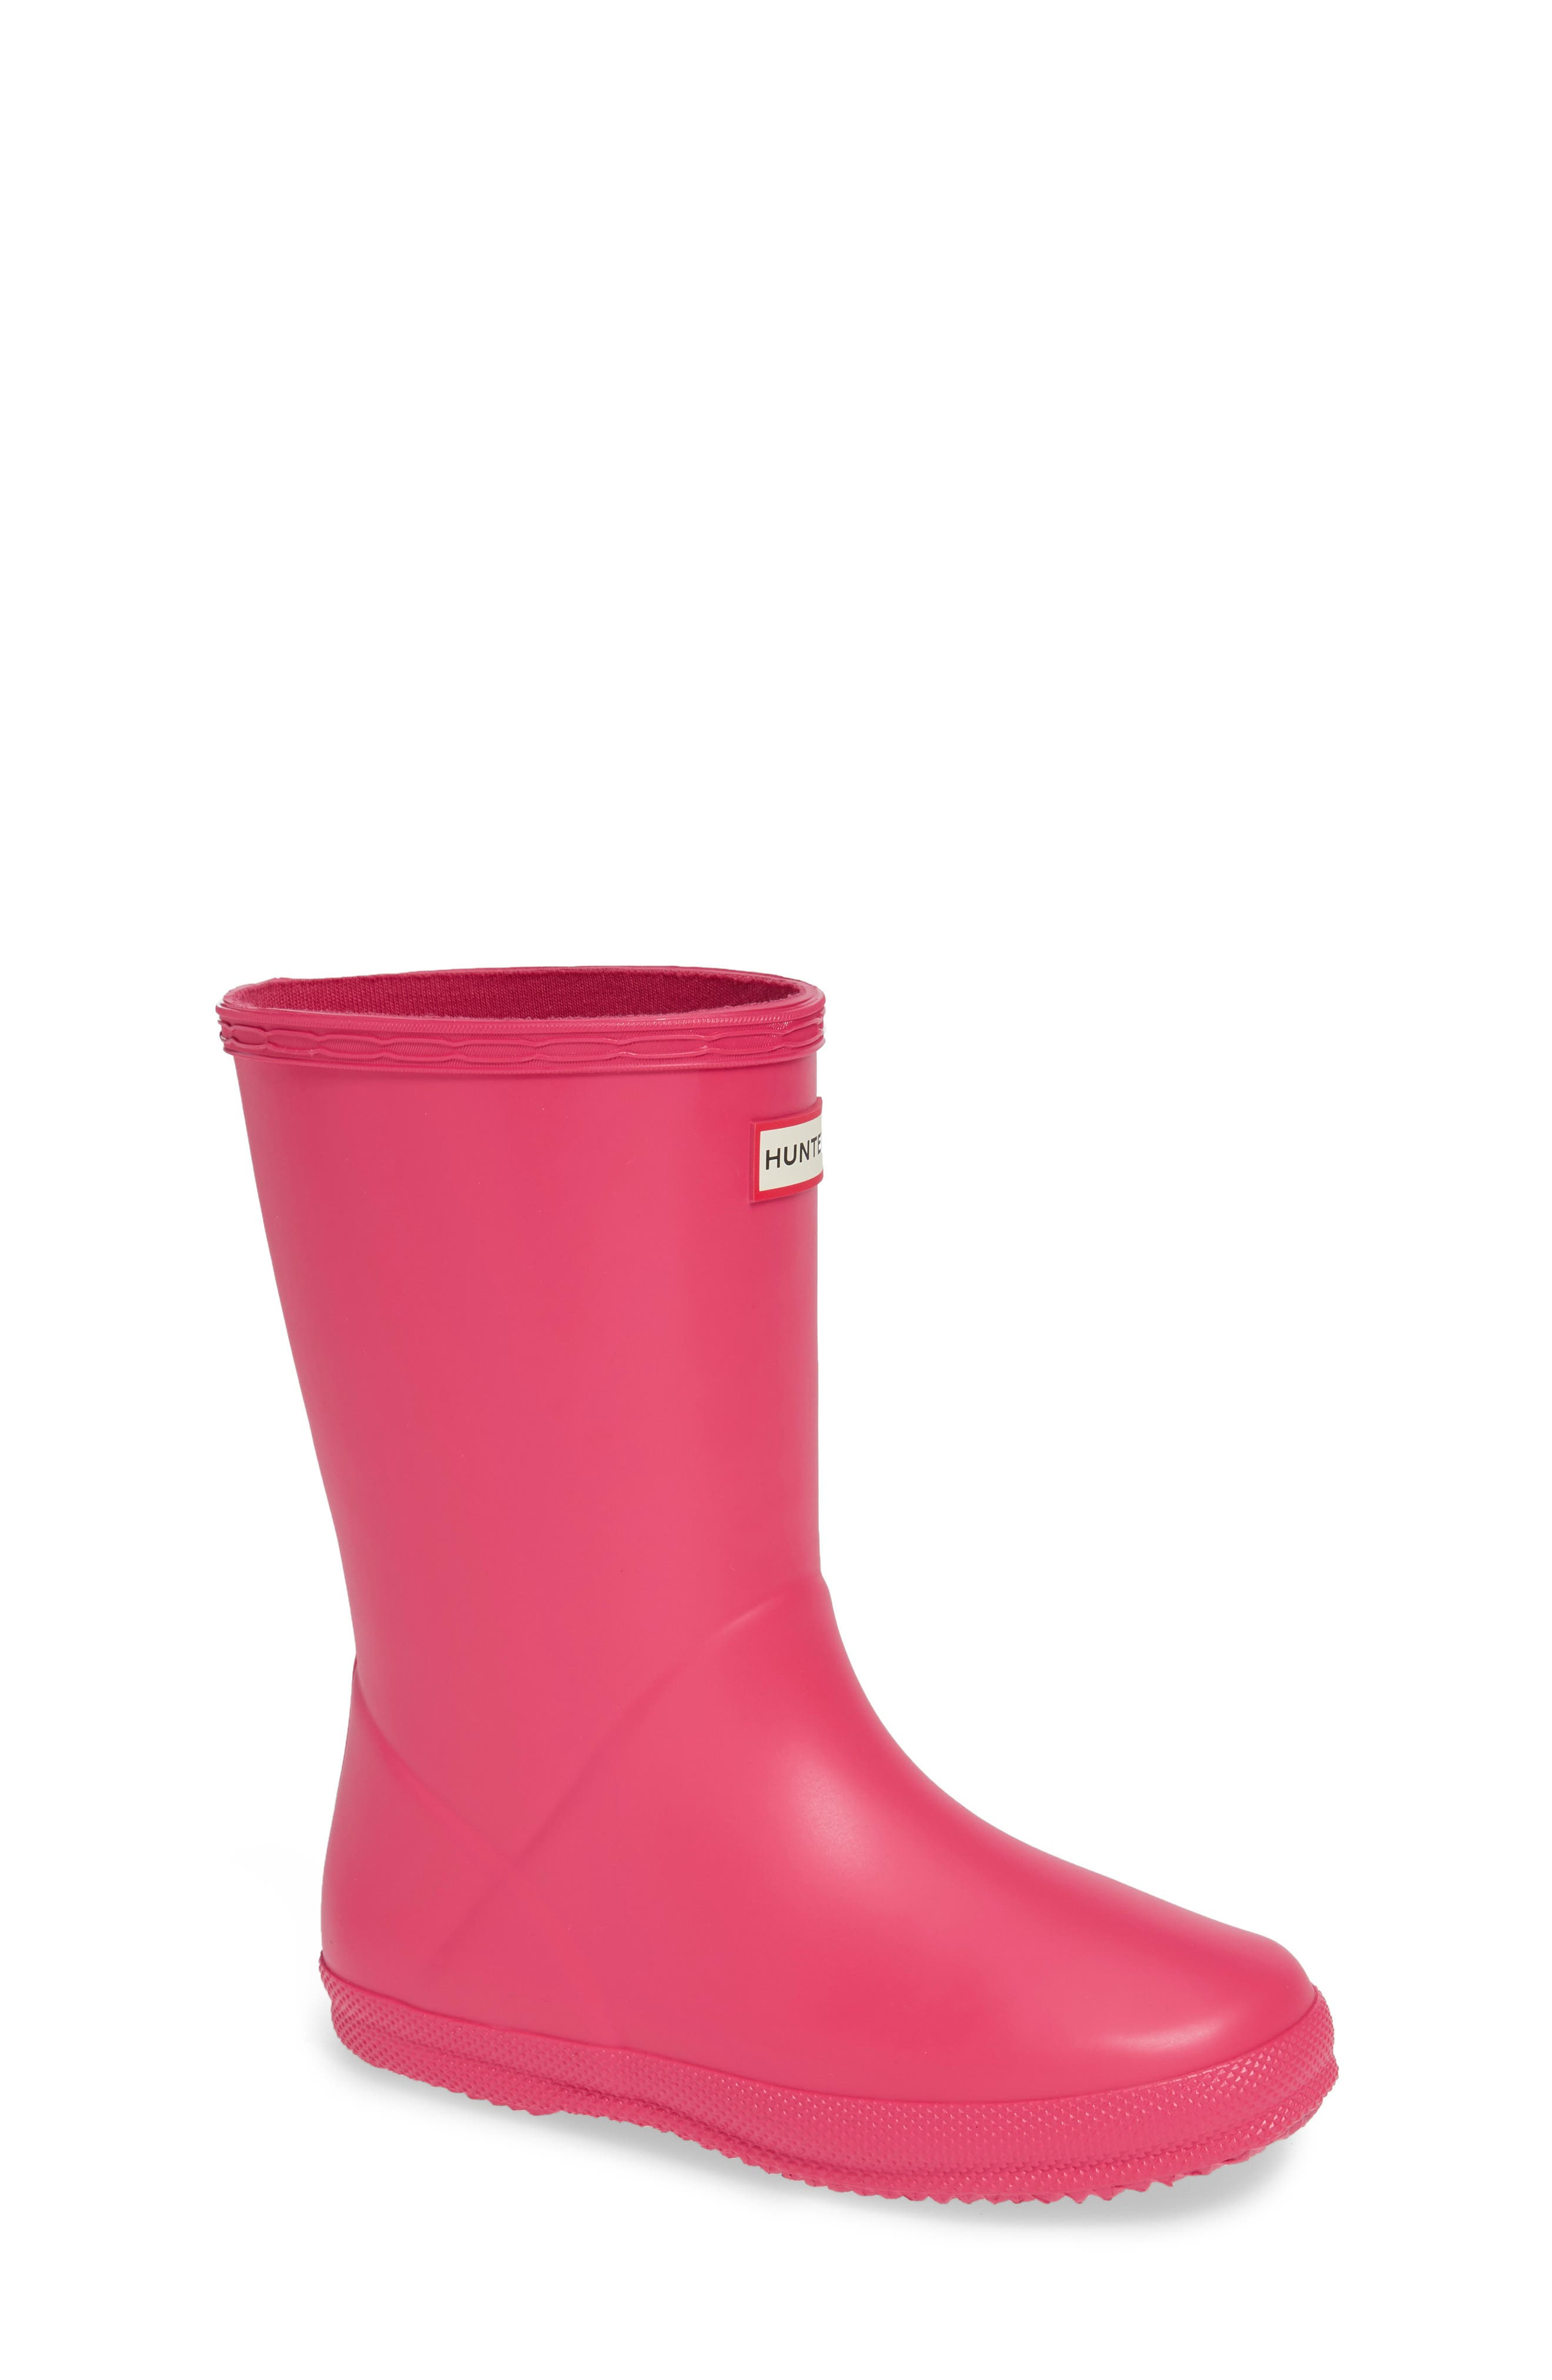 First Classic Waterproof Rain Boot,                             Main thumbnail 1, color,                             BRIGHT PINK